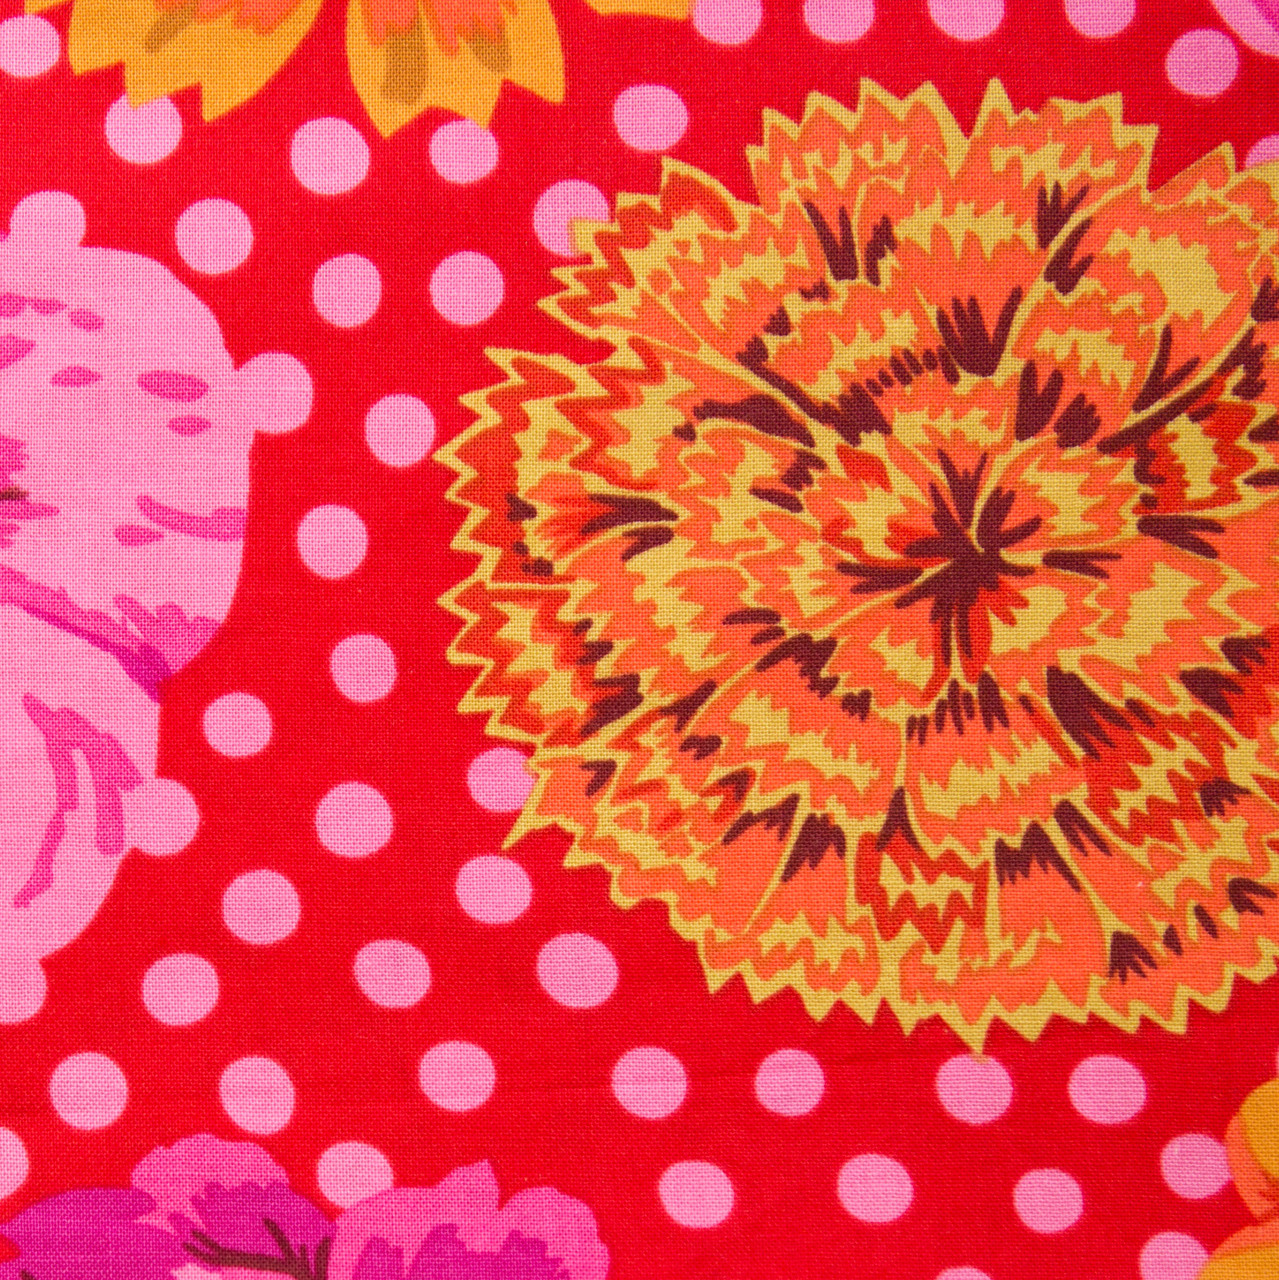 Chrysanthemum Delight print